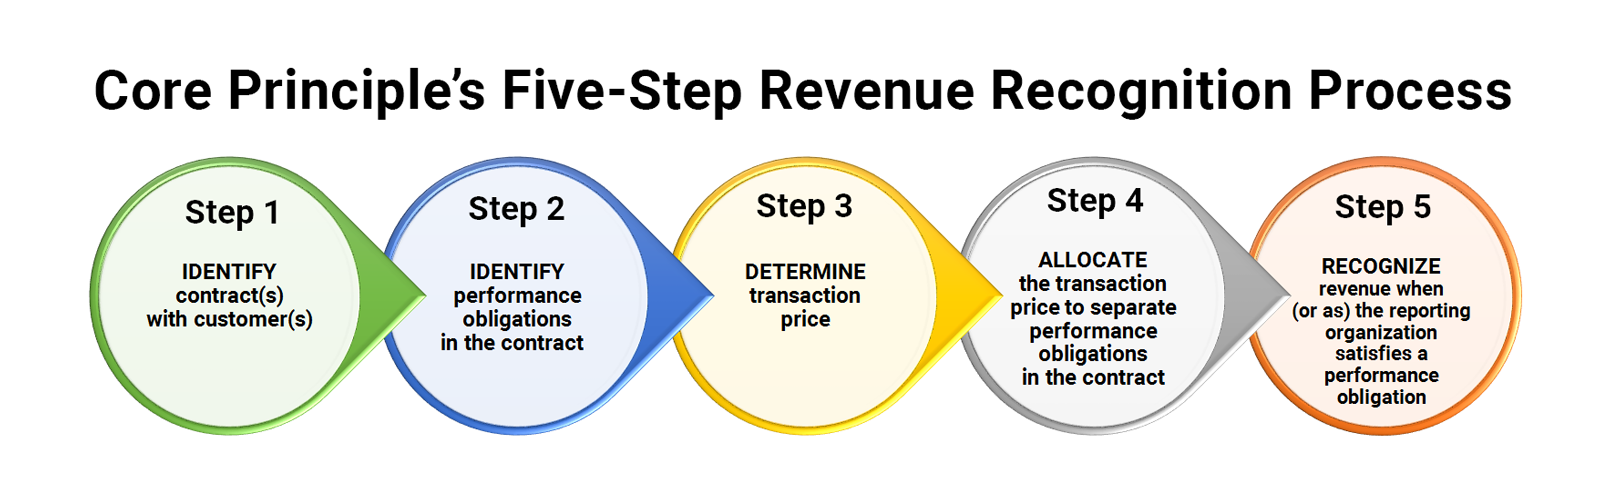 the revenue recognition principle and the methods used The revenue recognition principle is a cornerstone of accrual accounting together with the matching principle they both determine the accounting period in which.